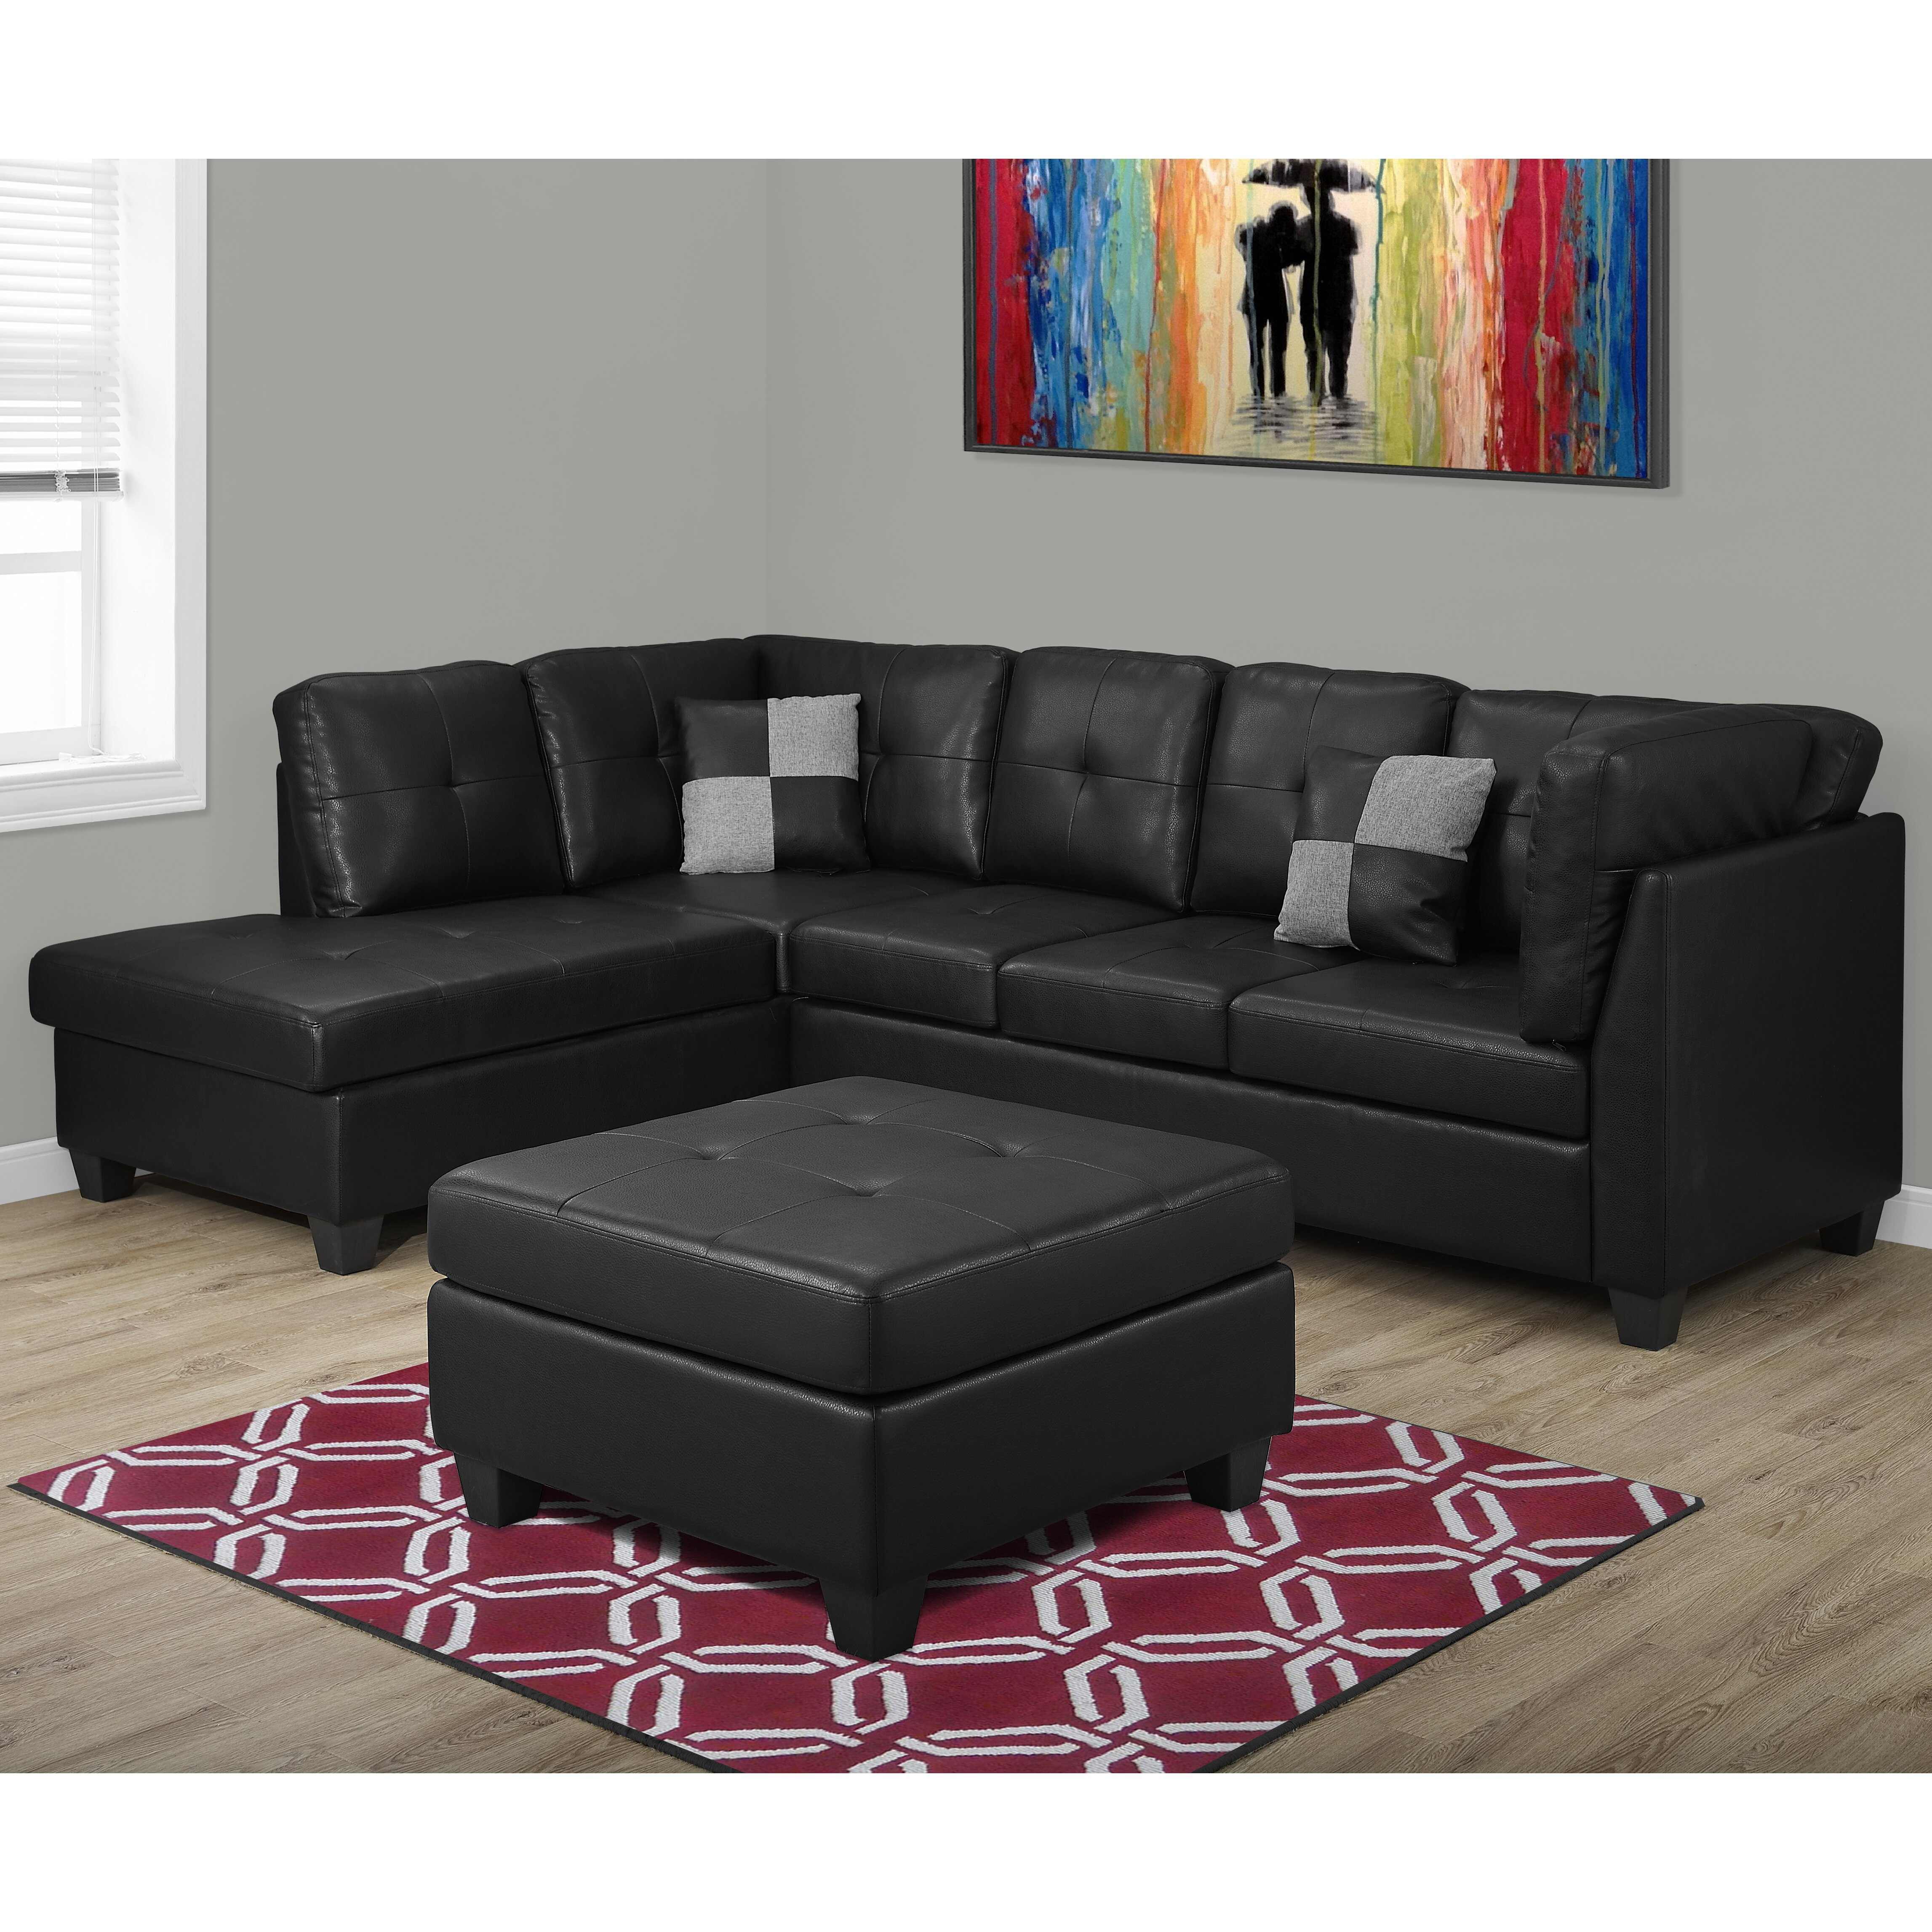 Monarch specialties inc sofa sectional wayfair for Wayfair sectionals